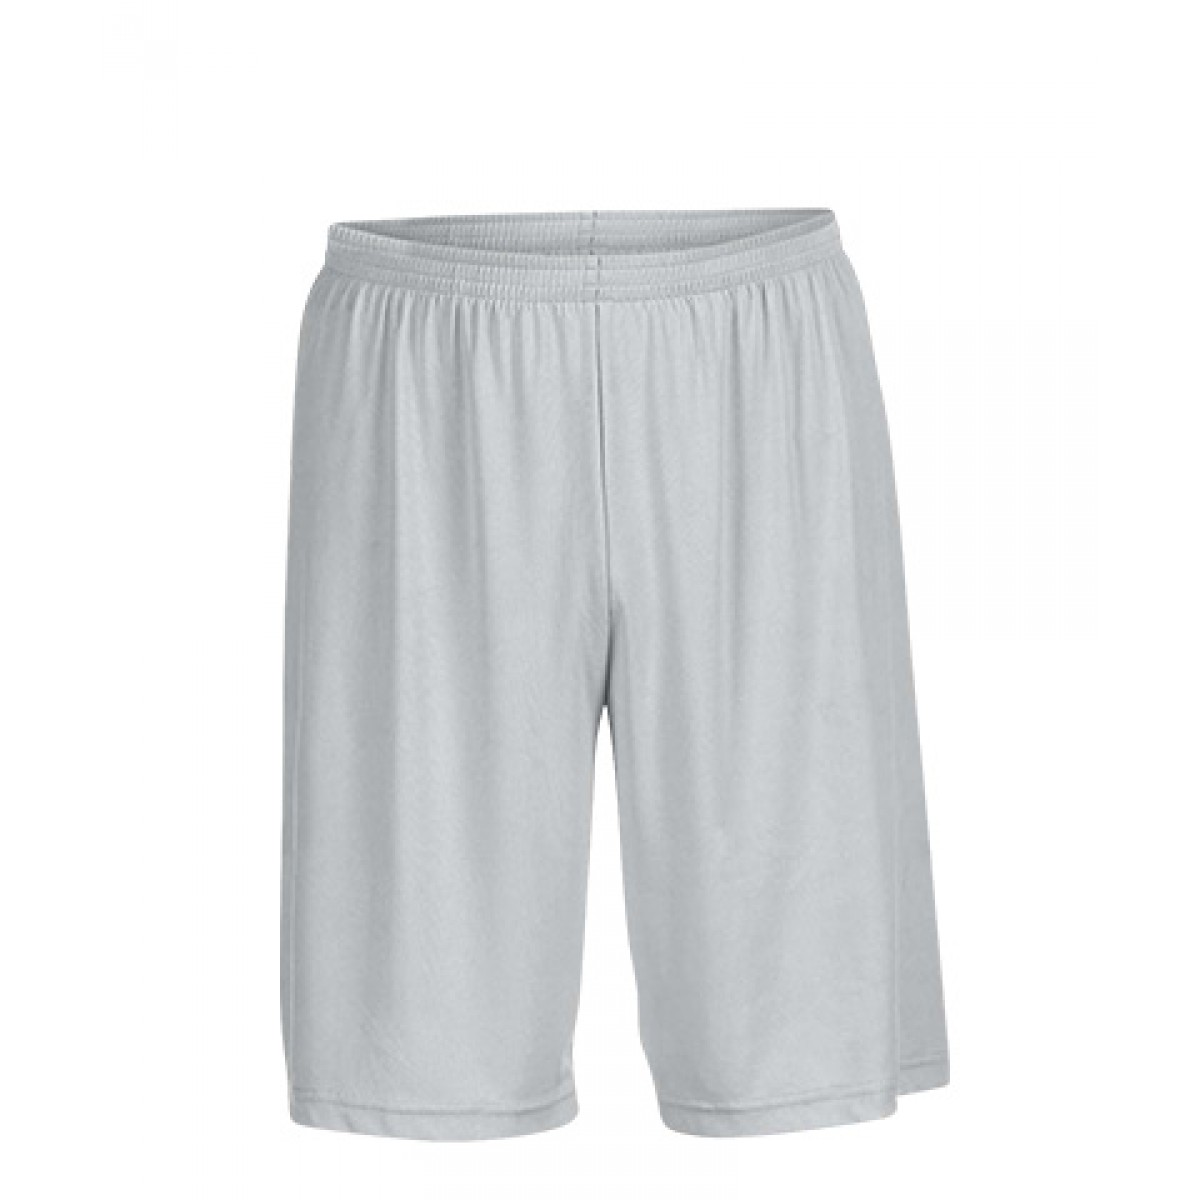 Men's Performance Shorts-Silver-L